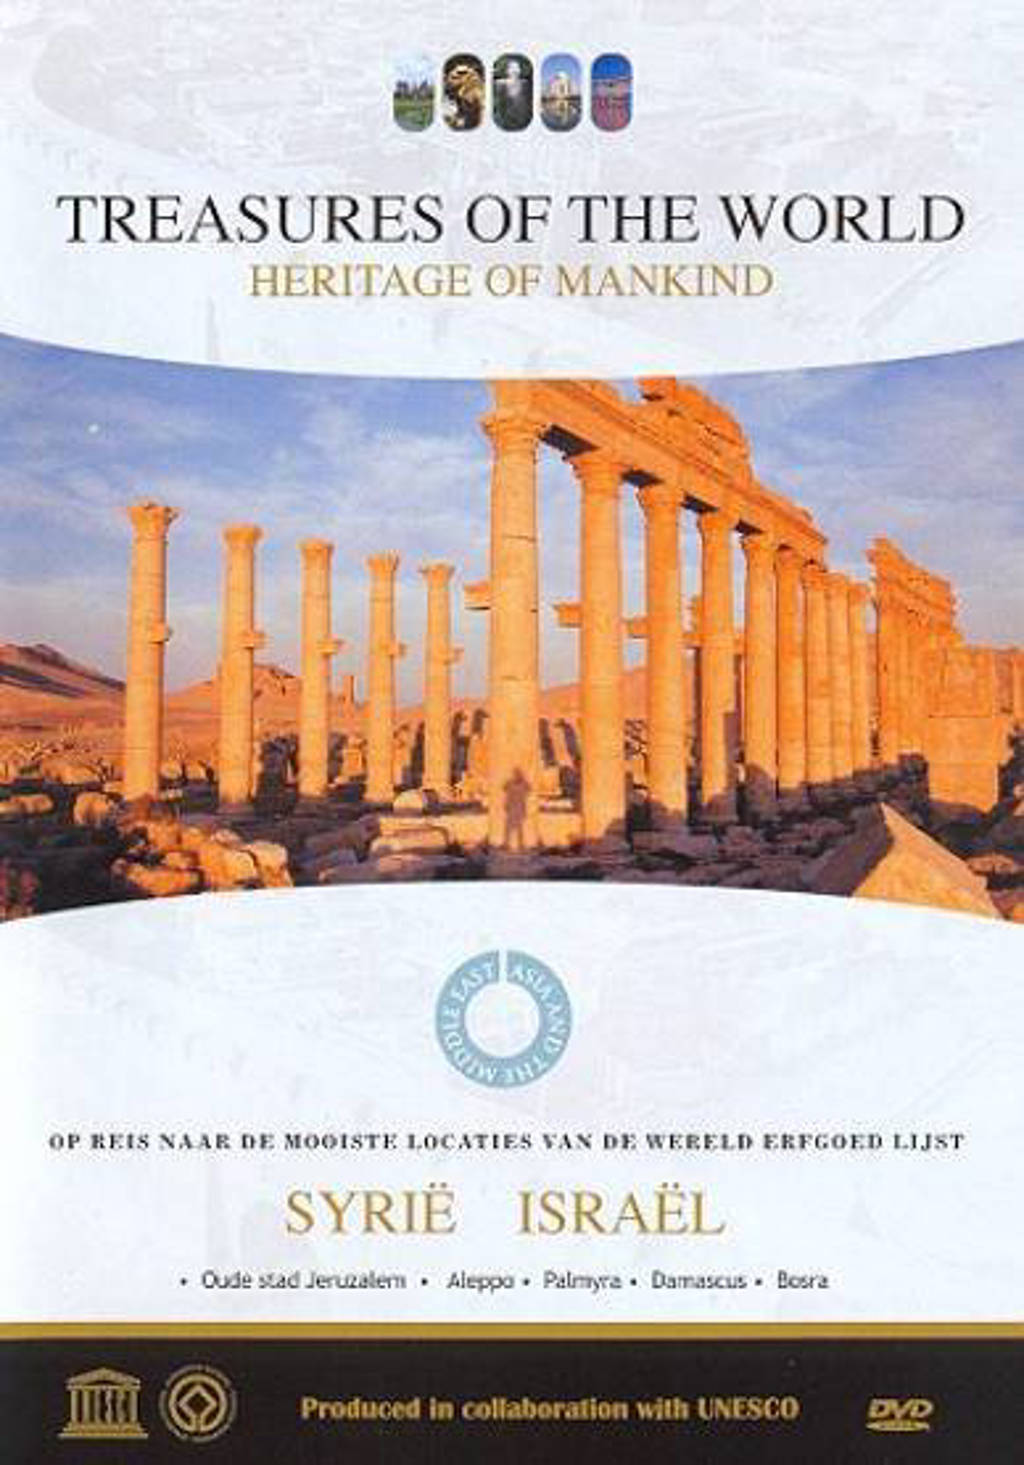 Treasures of the world 6 - Syrie (DVD)